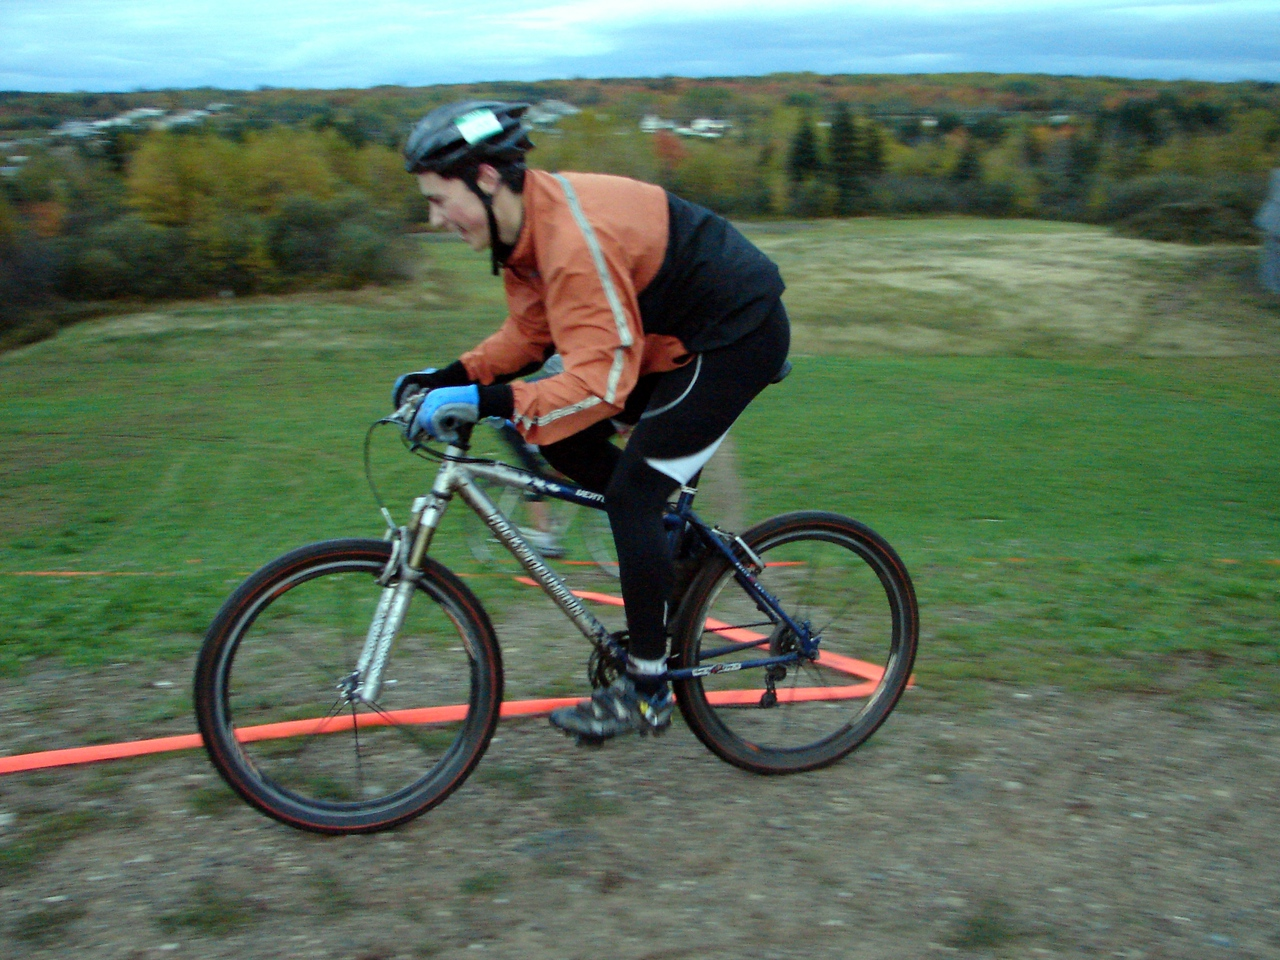 Smile/Grimace? whatever it takes to get you over the hills.